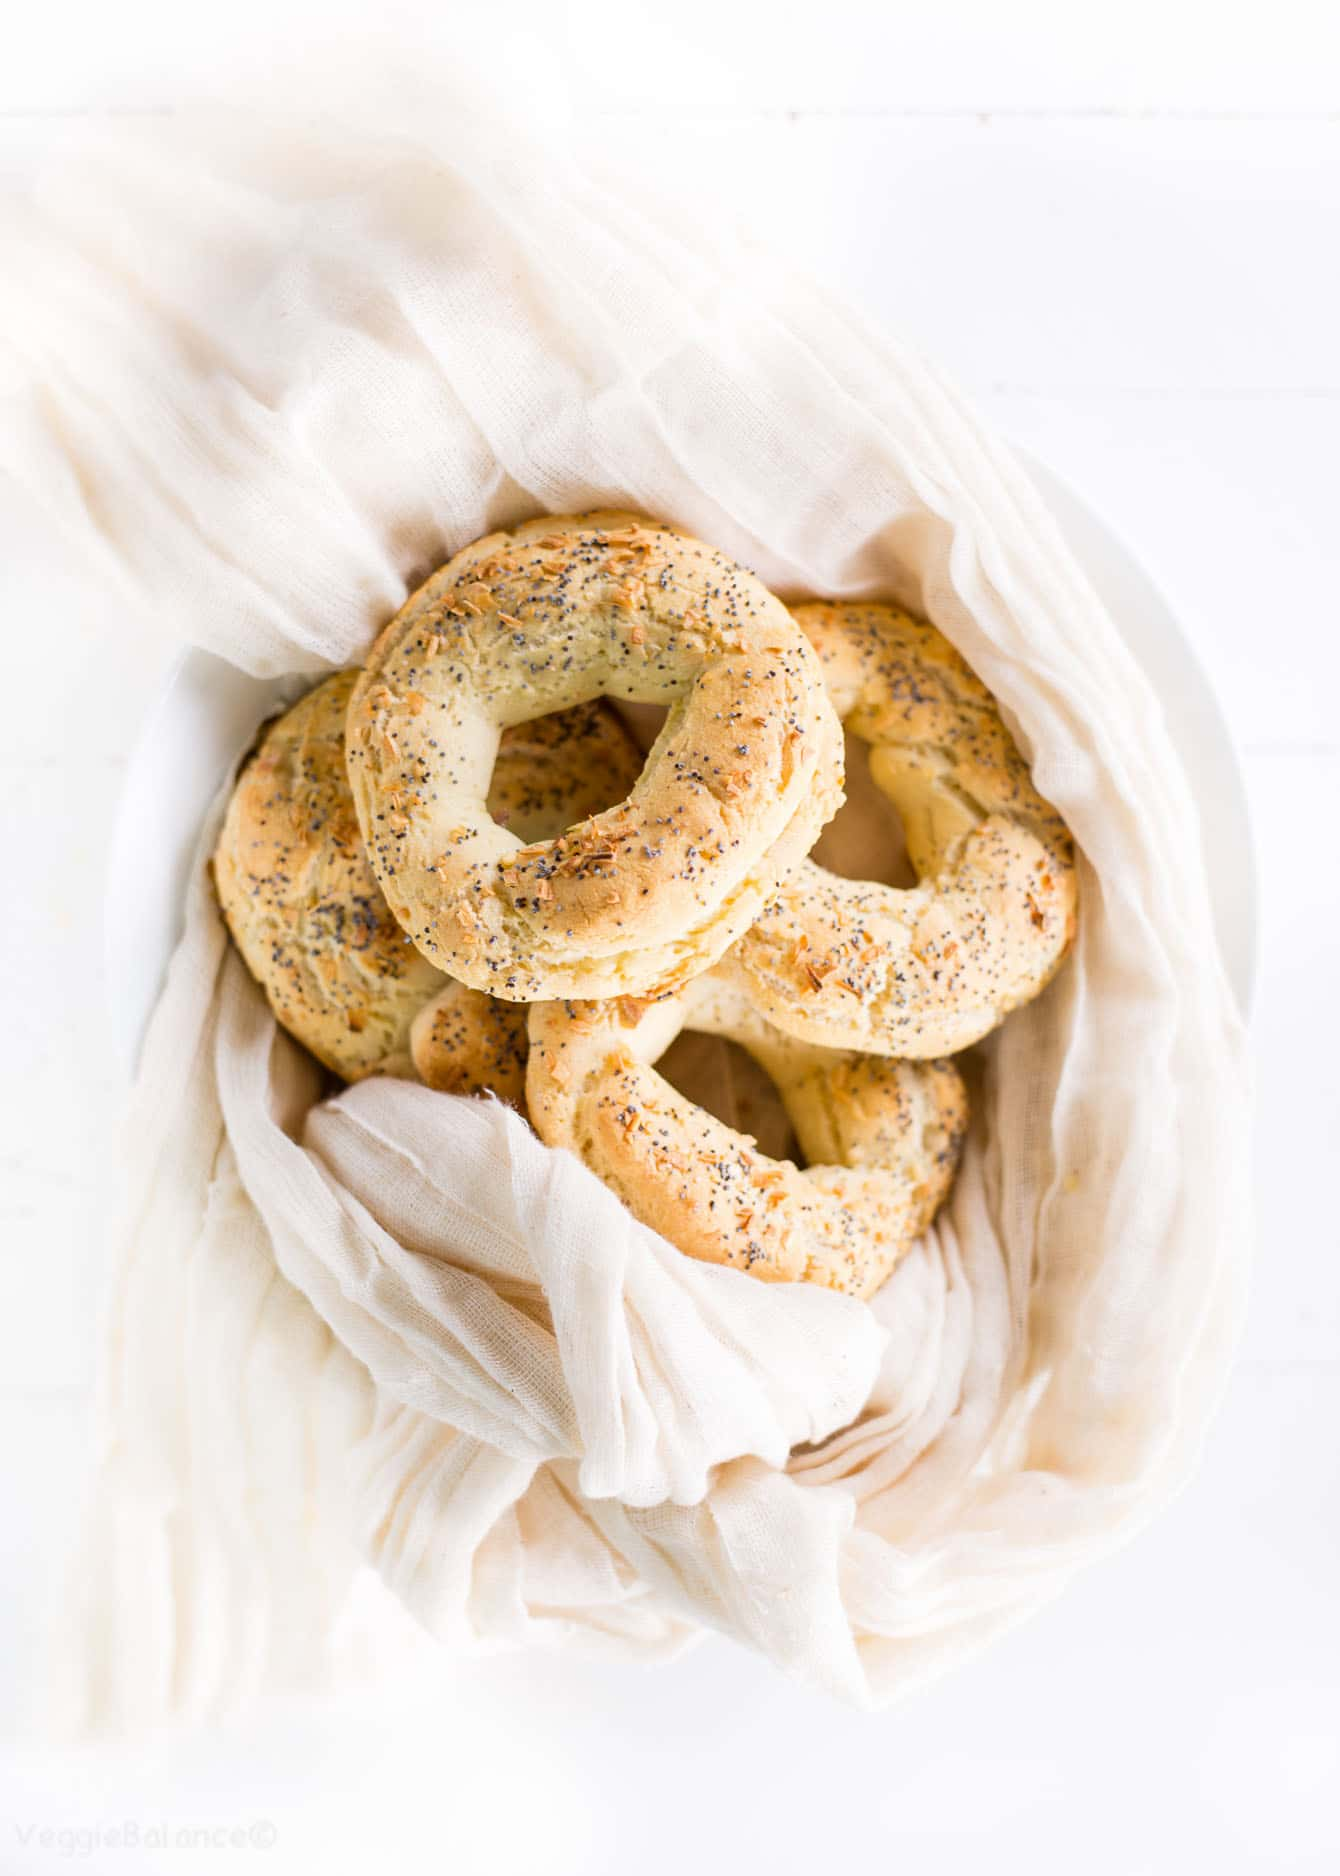 How-To make Gluten-Free Bagels guide